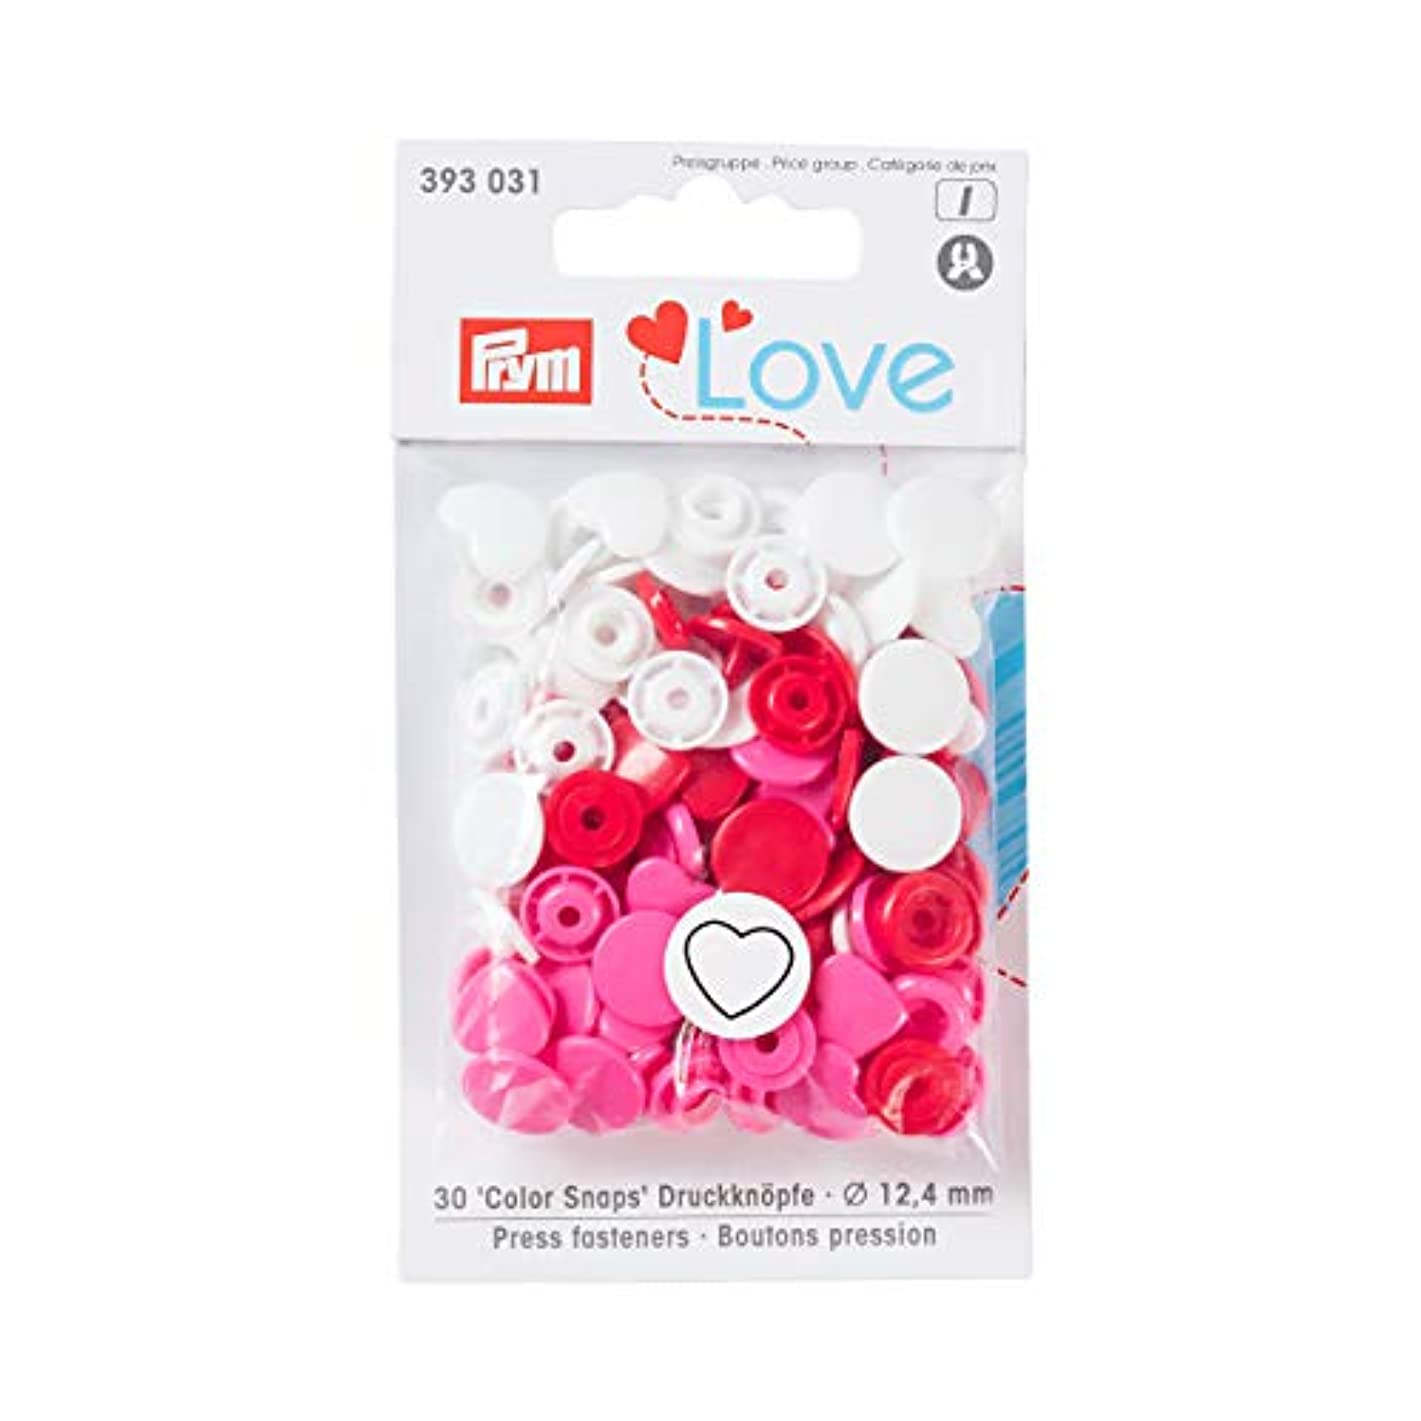 PrymLove Heart Shape Non-Sew ColorSnaps 12.4mm Snap Fasteners by Prym Love-Assorted Pack of Red, White and Bright Pink (30pc), 12 x 7 x 2 cm